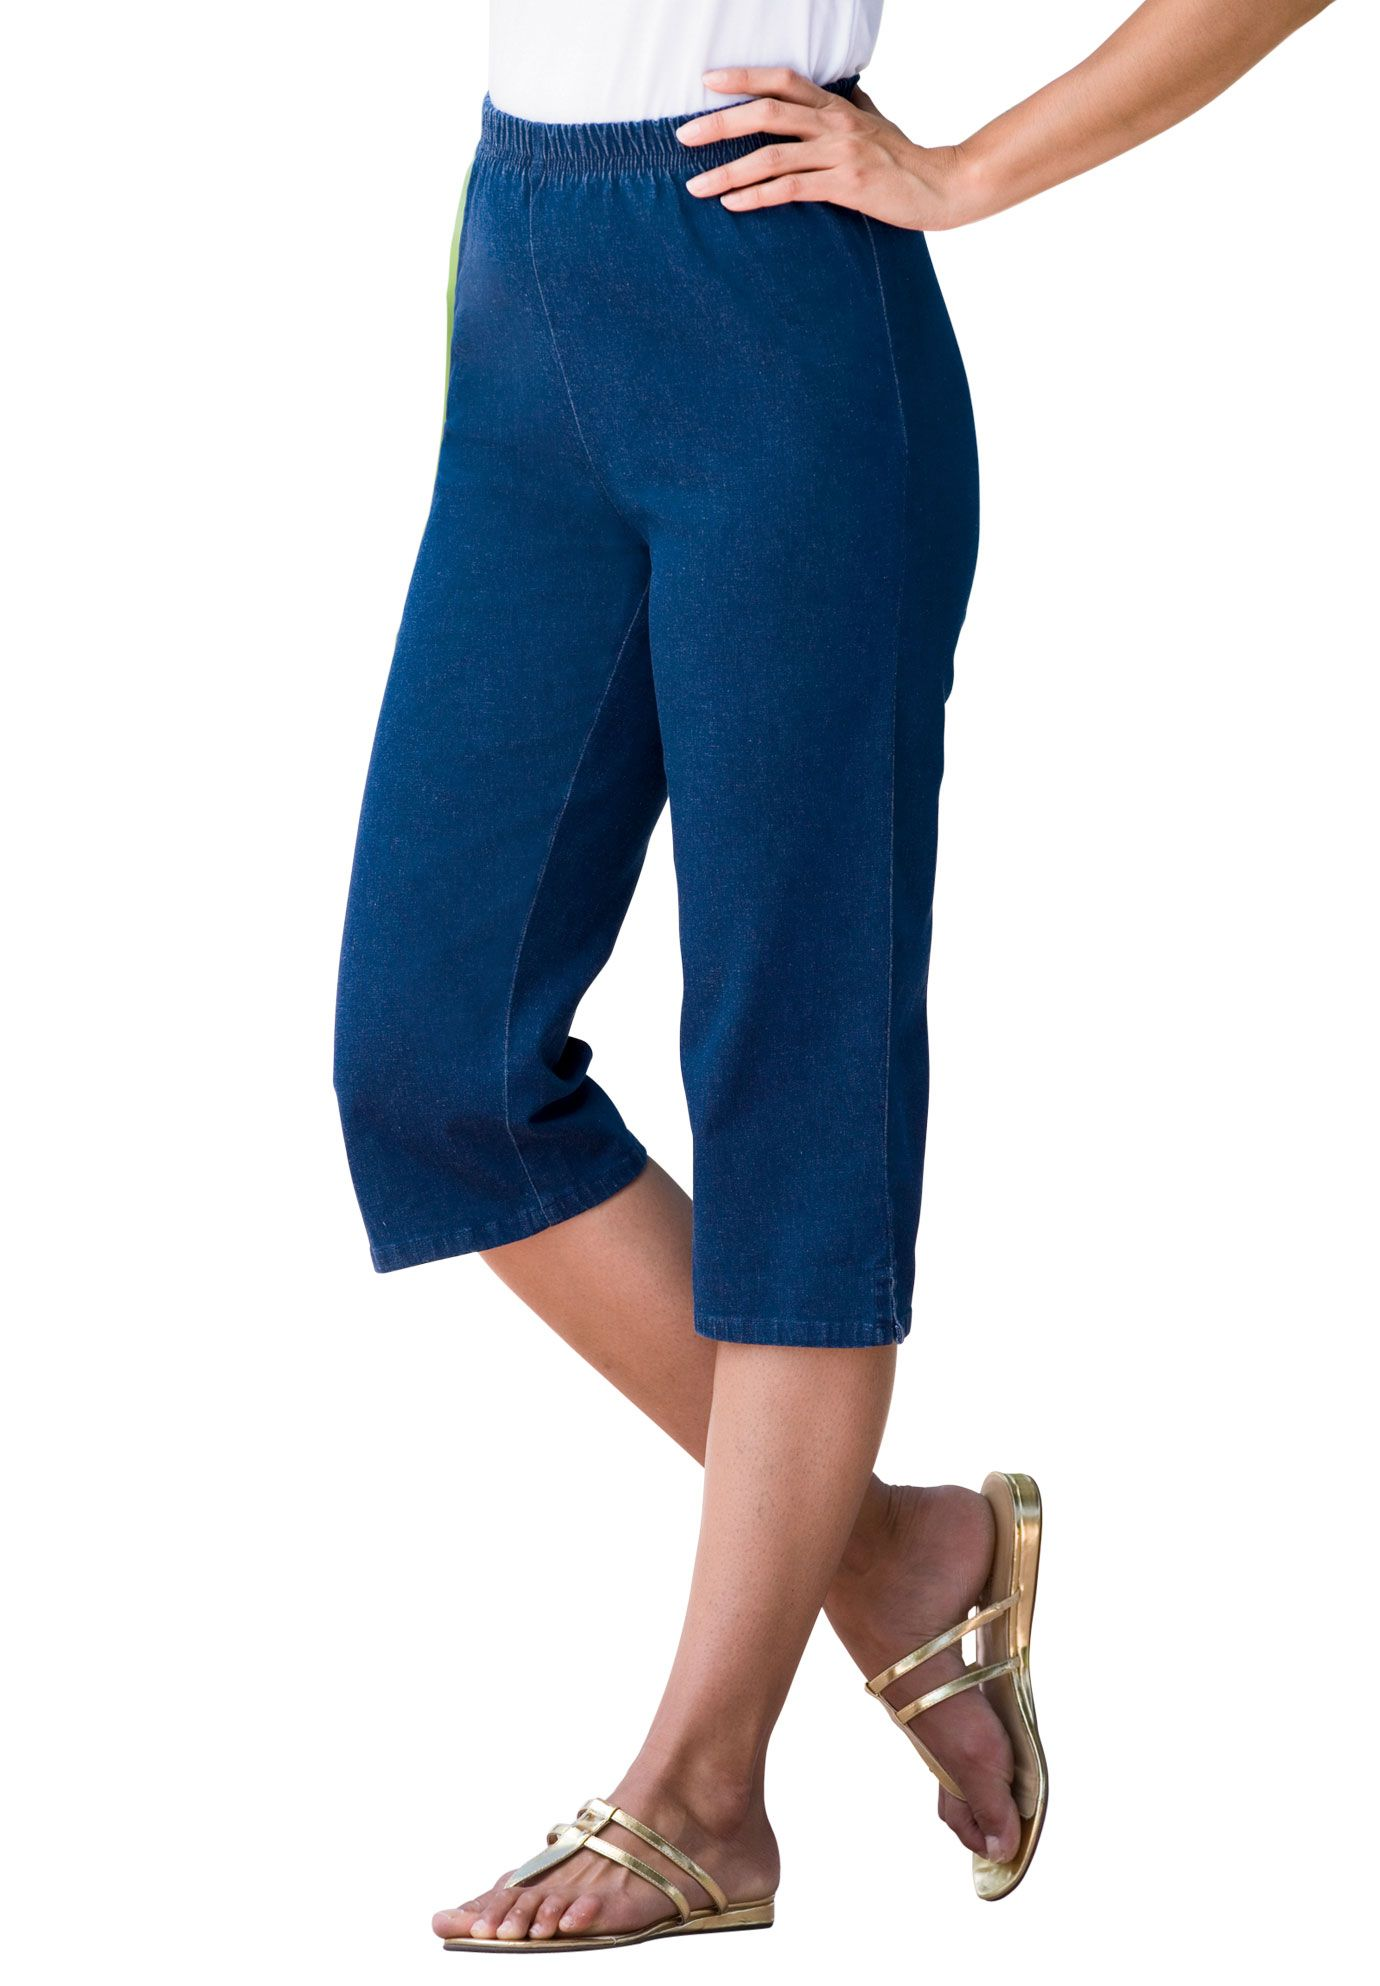 Women's Plus Size Petite Stretch Capris | Pedal pushers, Clothing ...